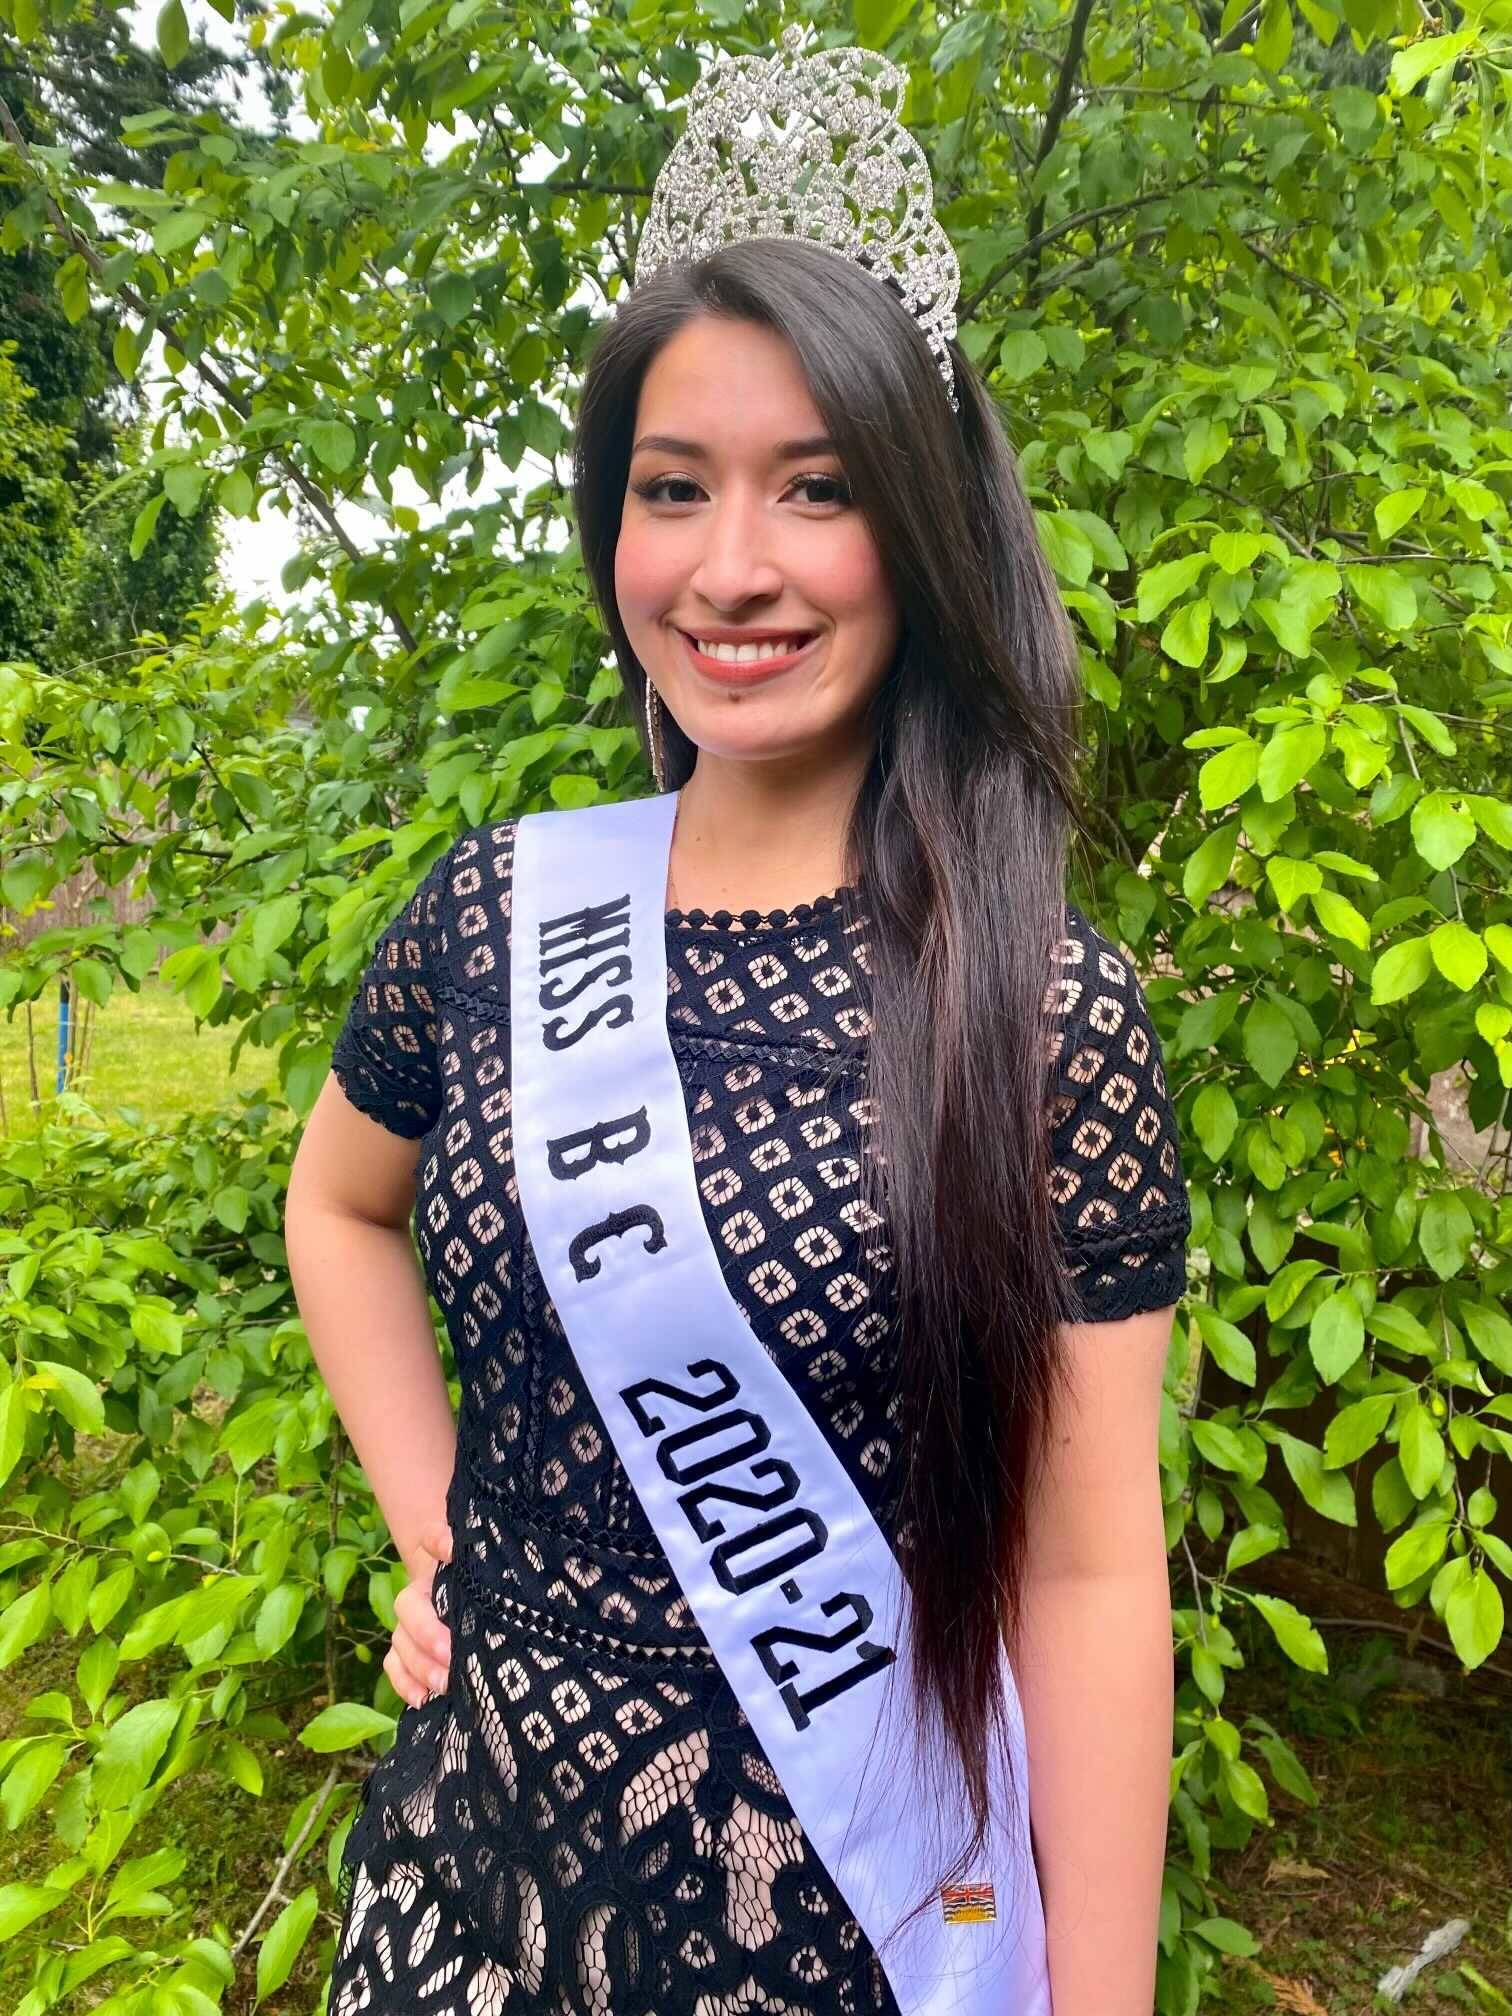 """The current reigning Miss BC Bremiella De Guzman, who is from Surrey, is wanting to set the record straight after a different woman, claiming to be """"Miss BC 2020,"""" used the N-word repeatedly in a TikTok video. (submitted photo)"""